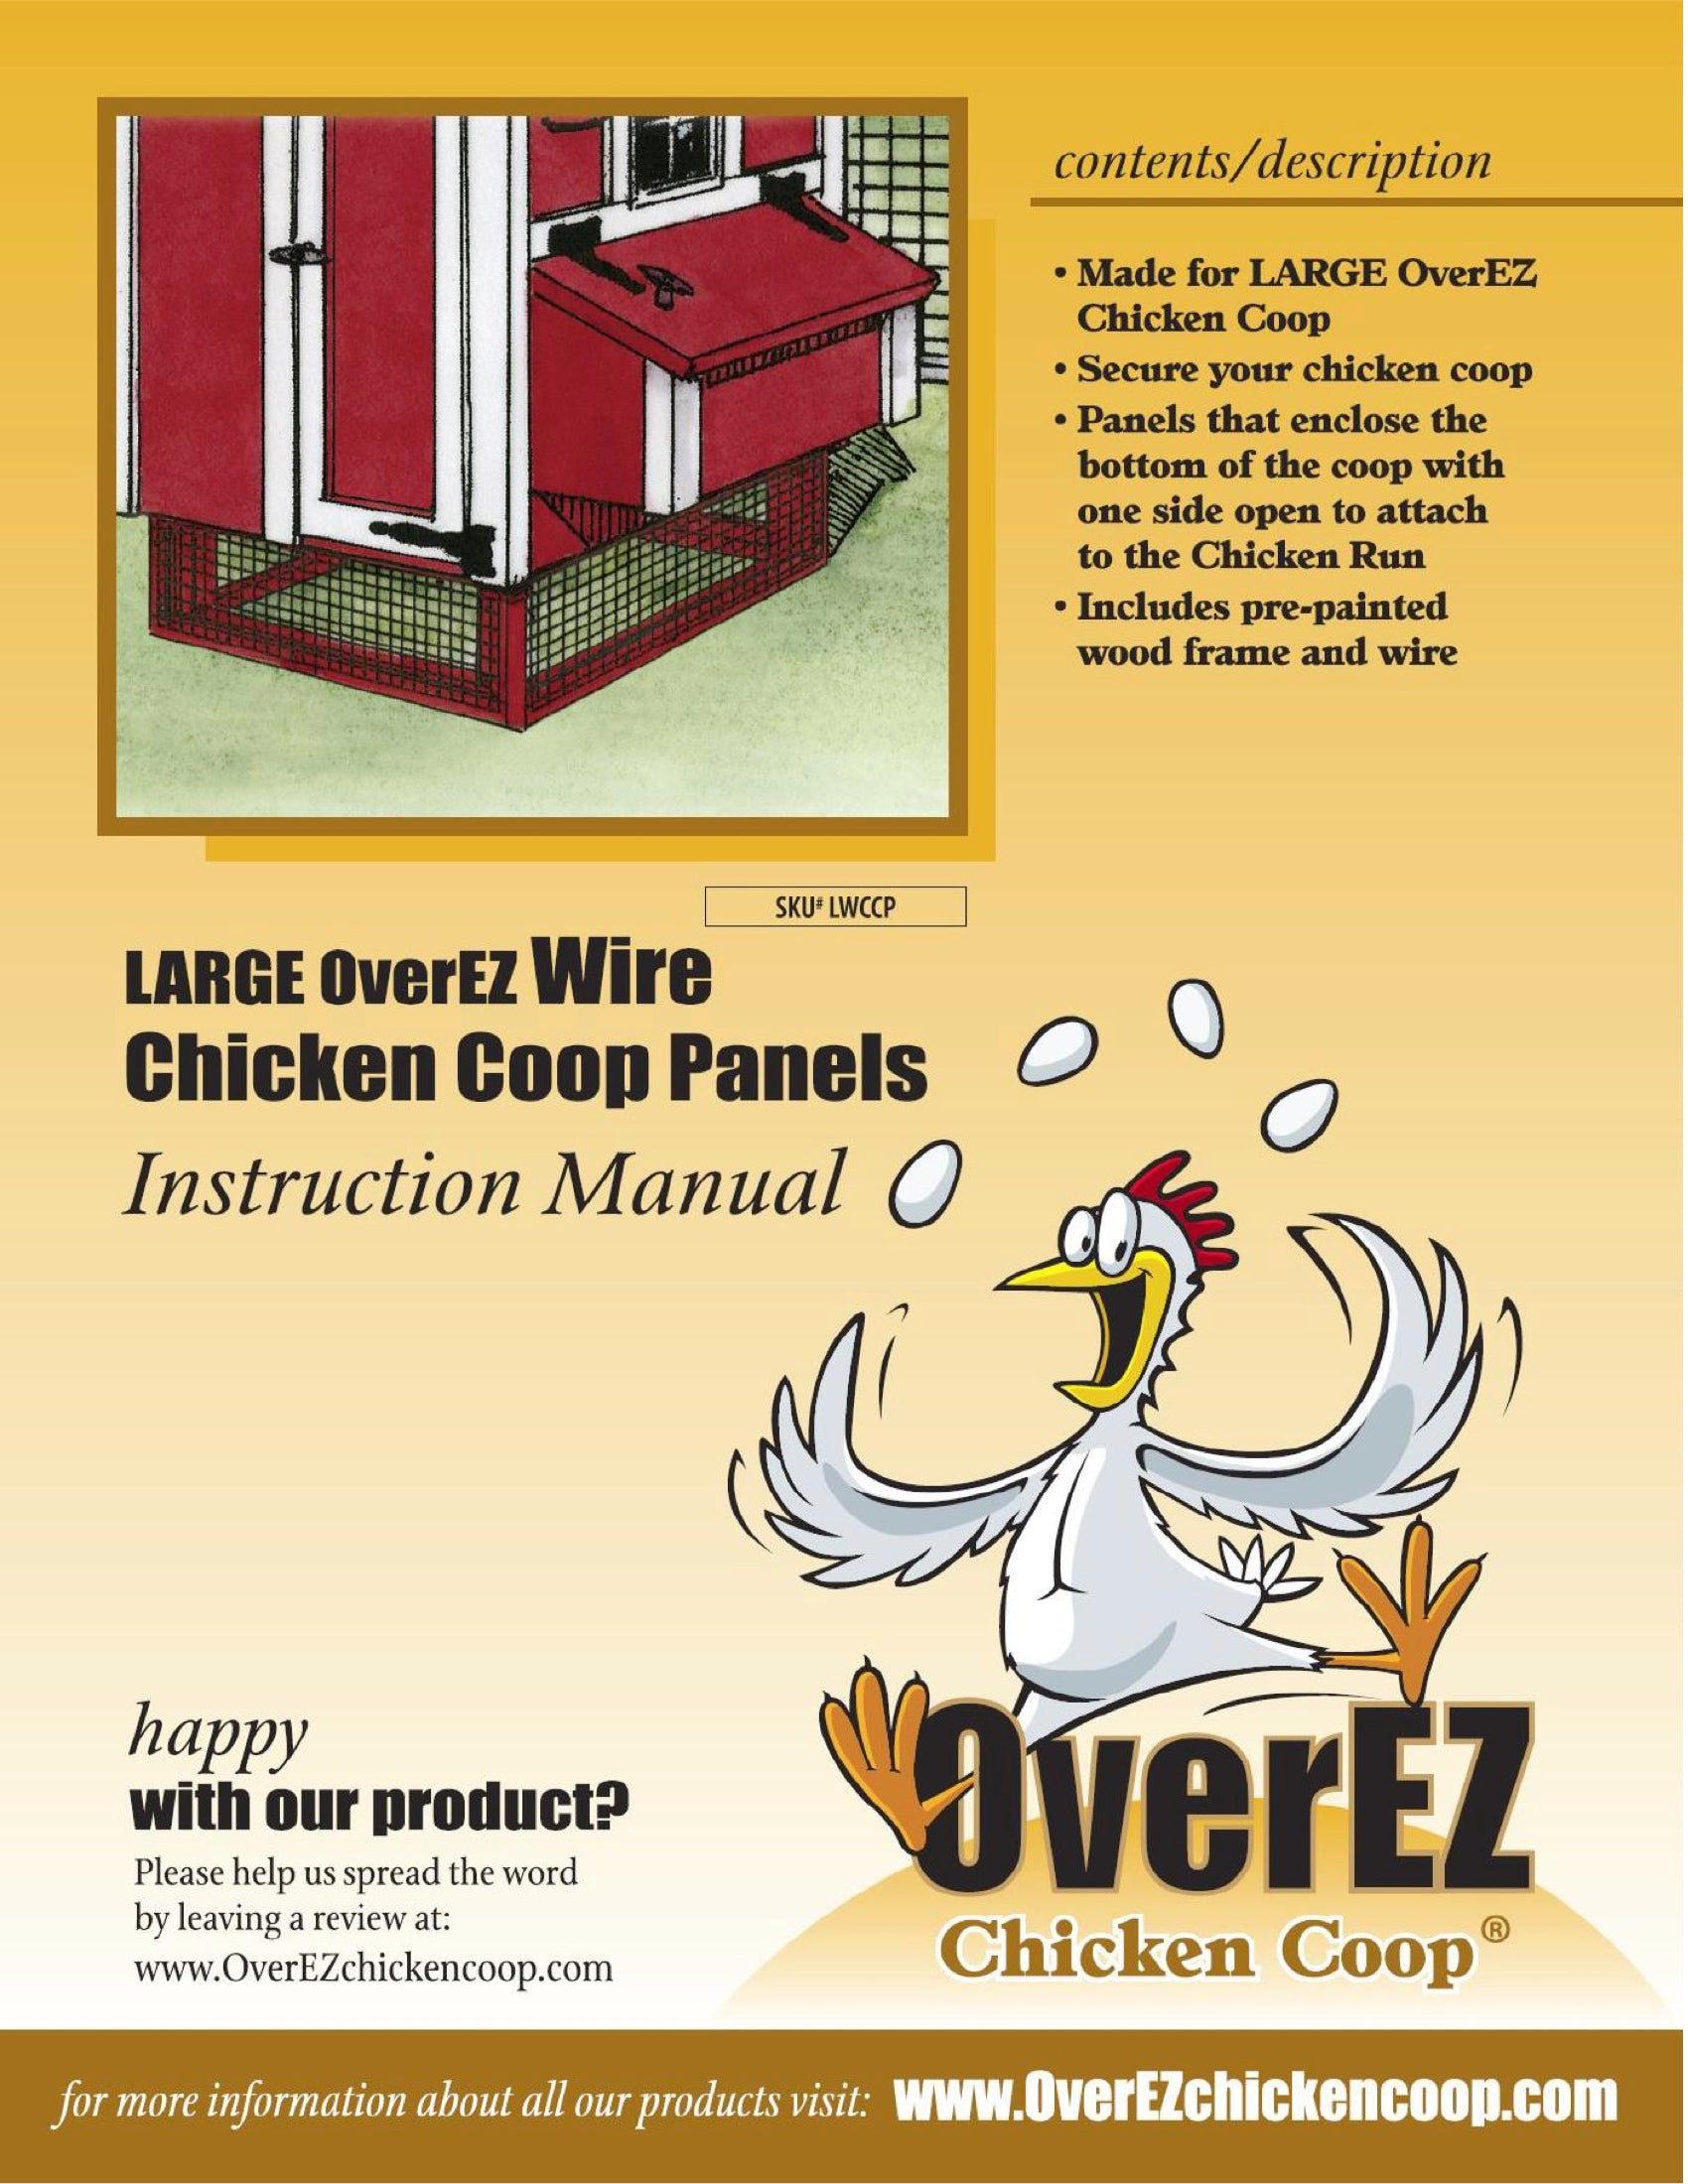 Large OverEZ Wire Chicken Coop Panels Instruction Sheet